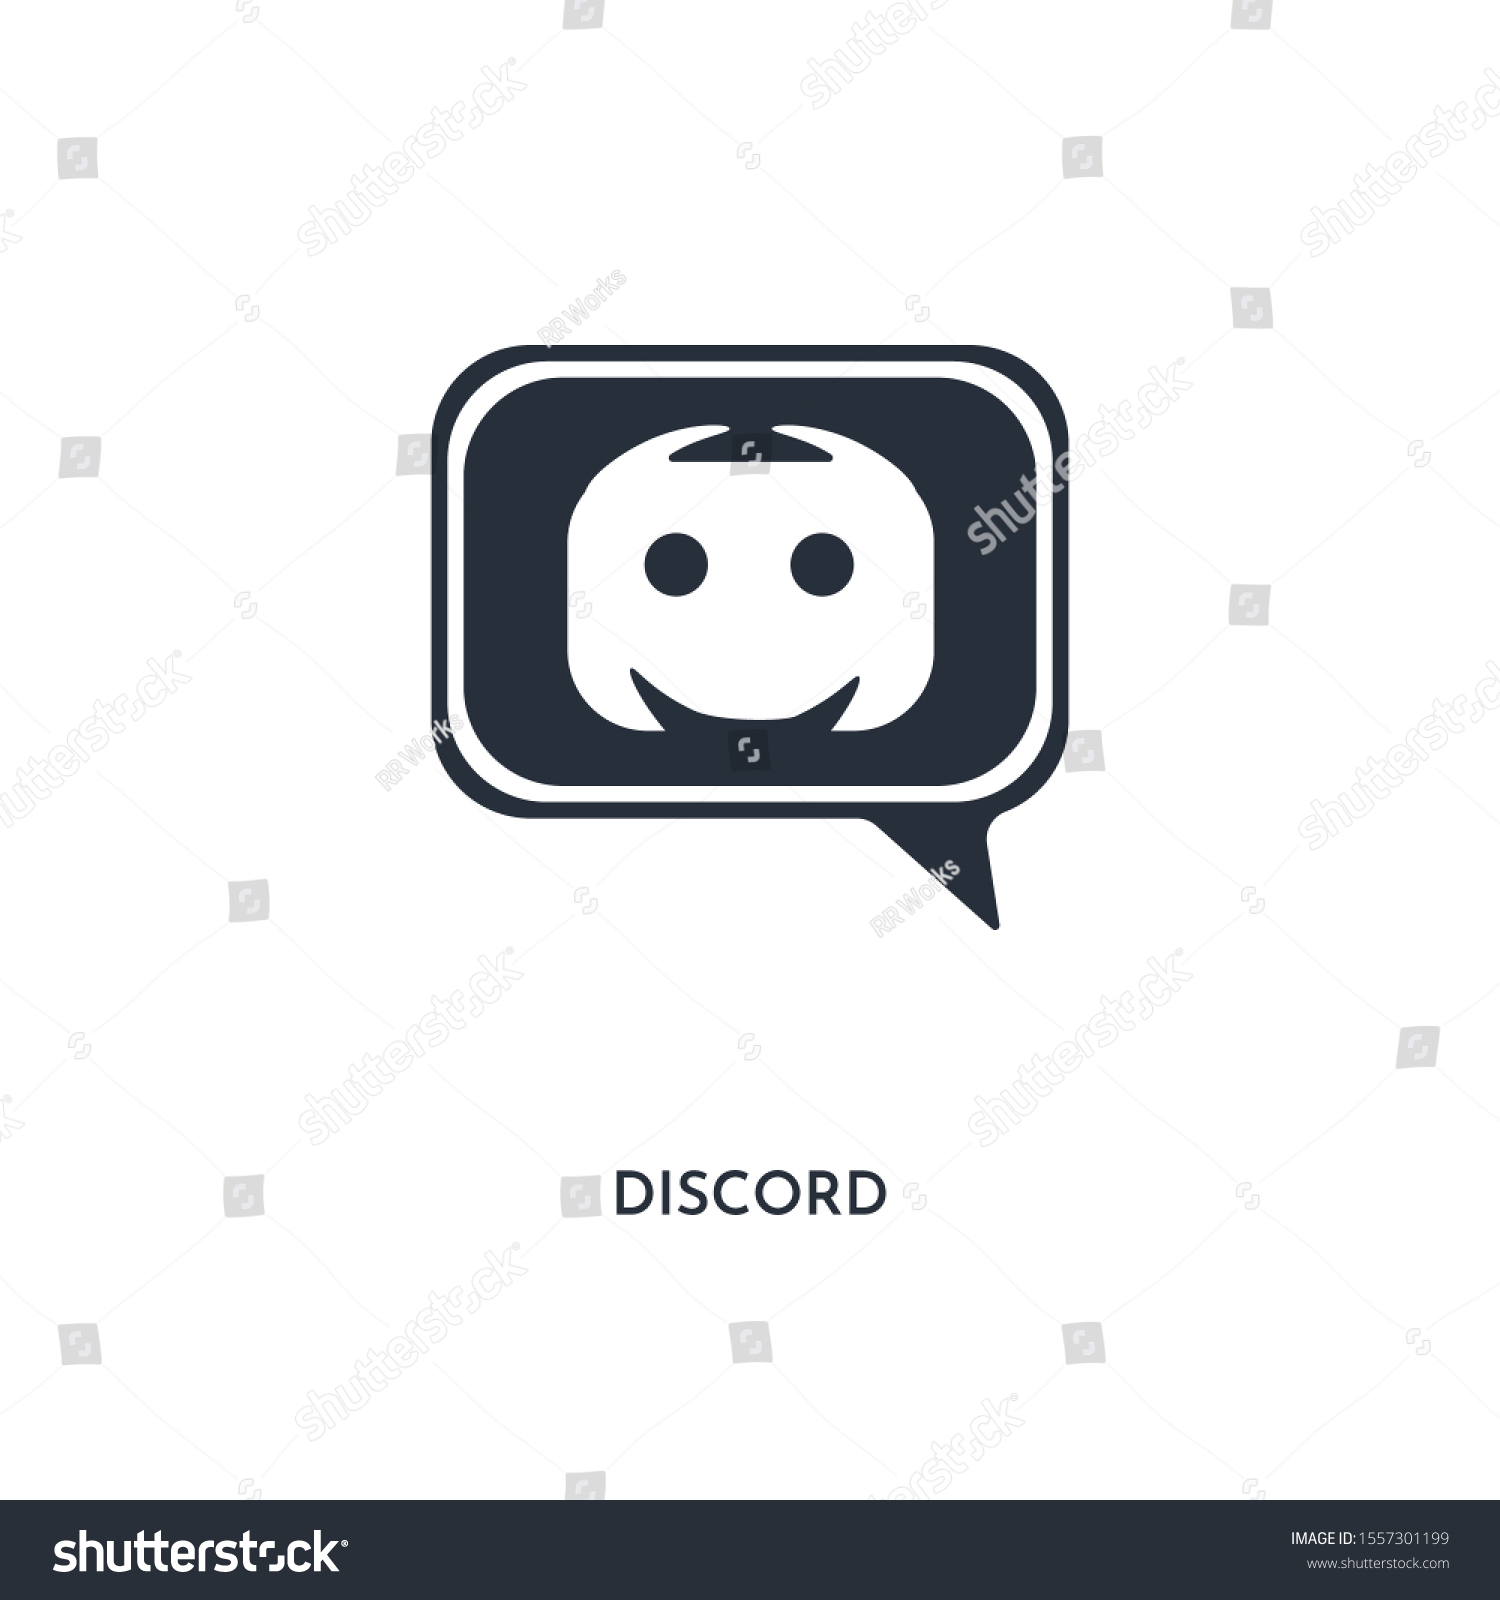 Discord Icon Simple Element Illustration Isolated Stock Vector